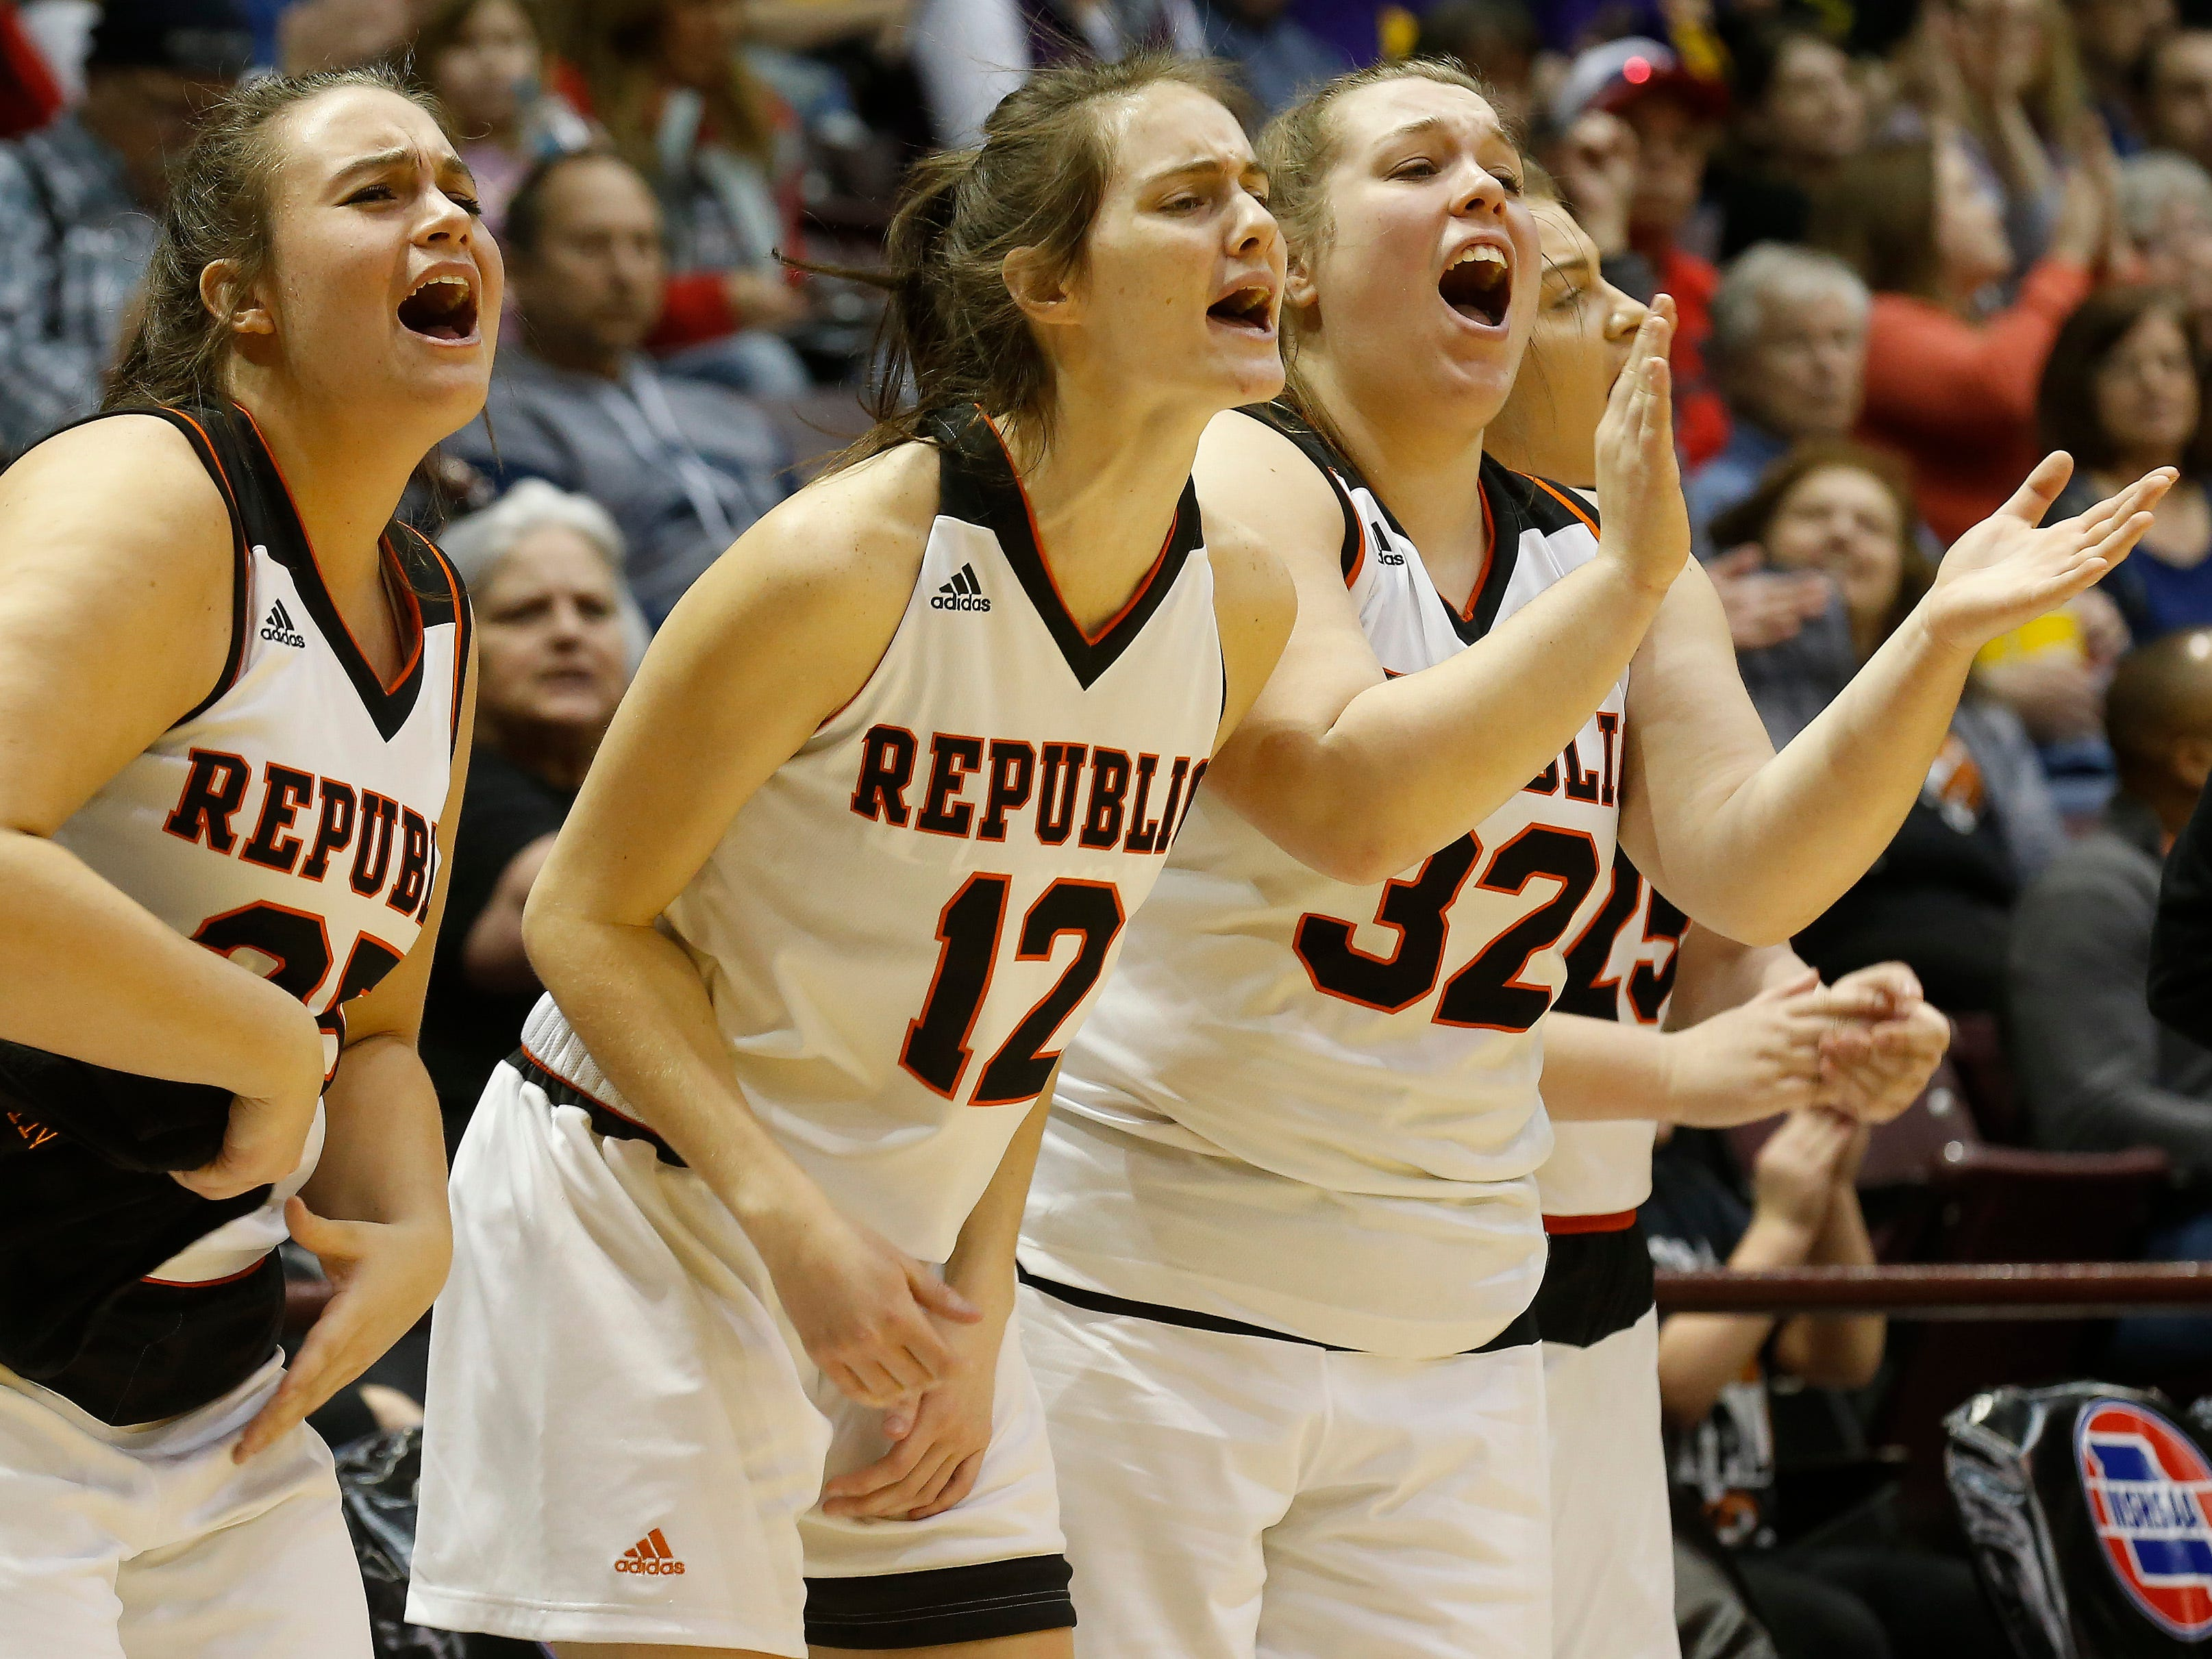 The Republic Tigers lost to the North Kansas City Hornets 42-29 in the Class 5 semi-final game at Hammons Student Center on Friday, March 15, 2019.